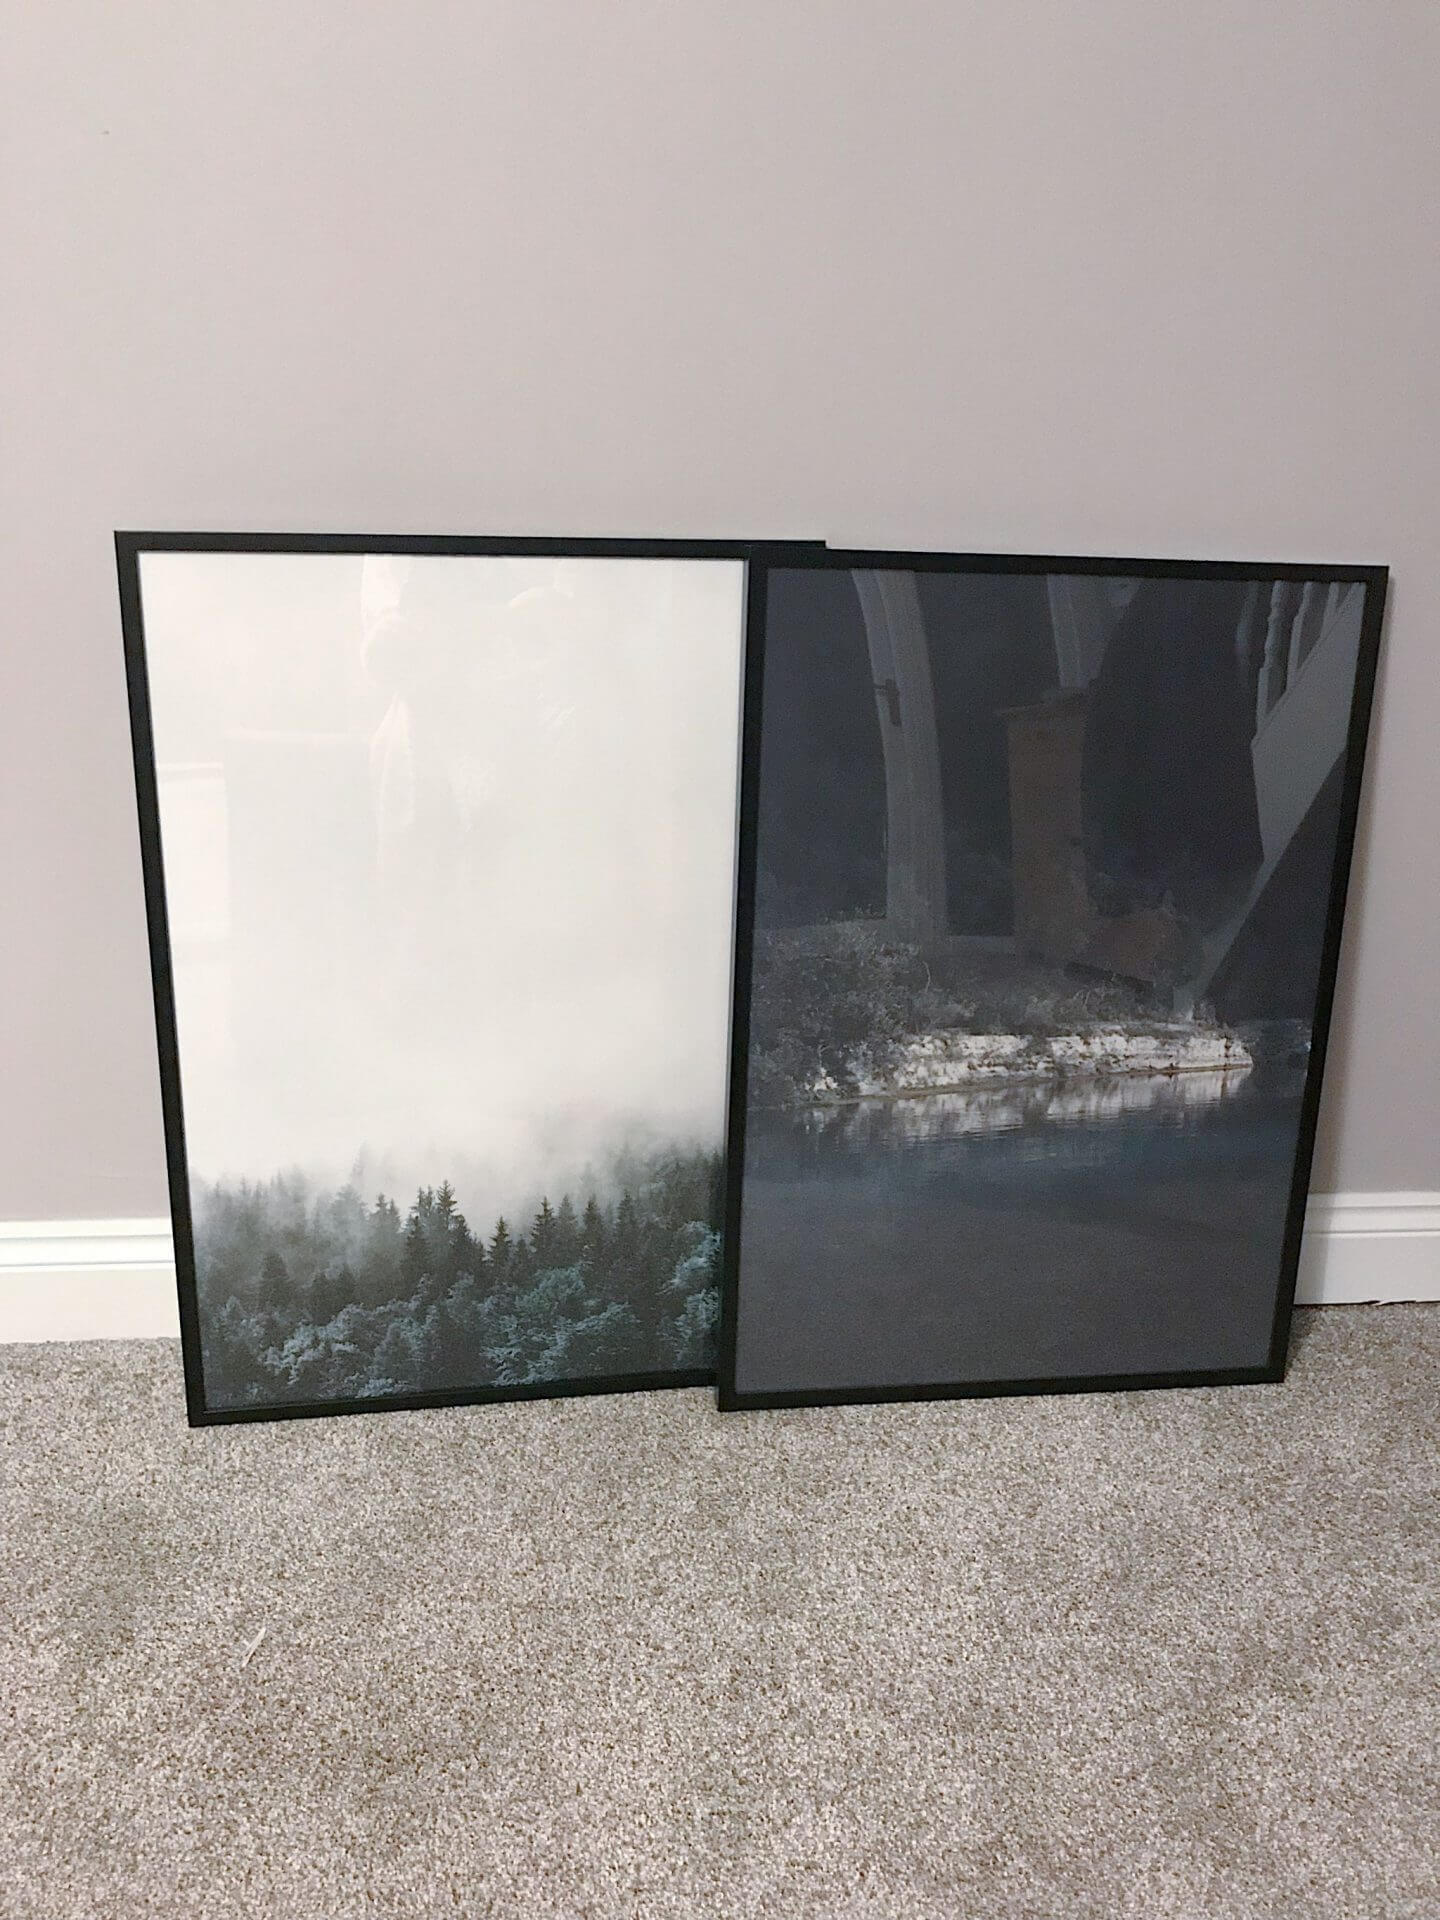 Pair of artwork prints on the floor - forest and green